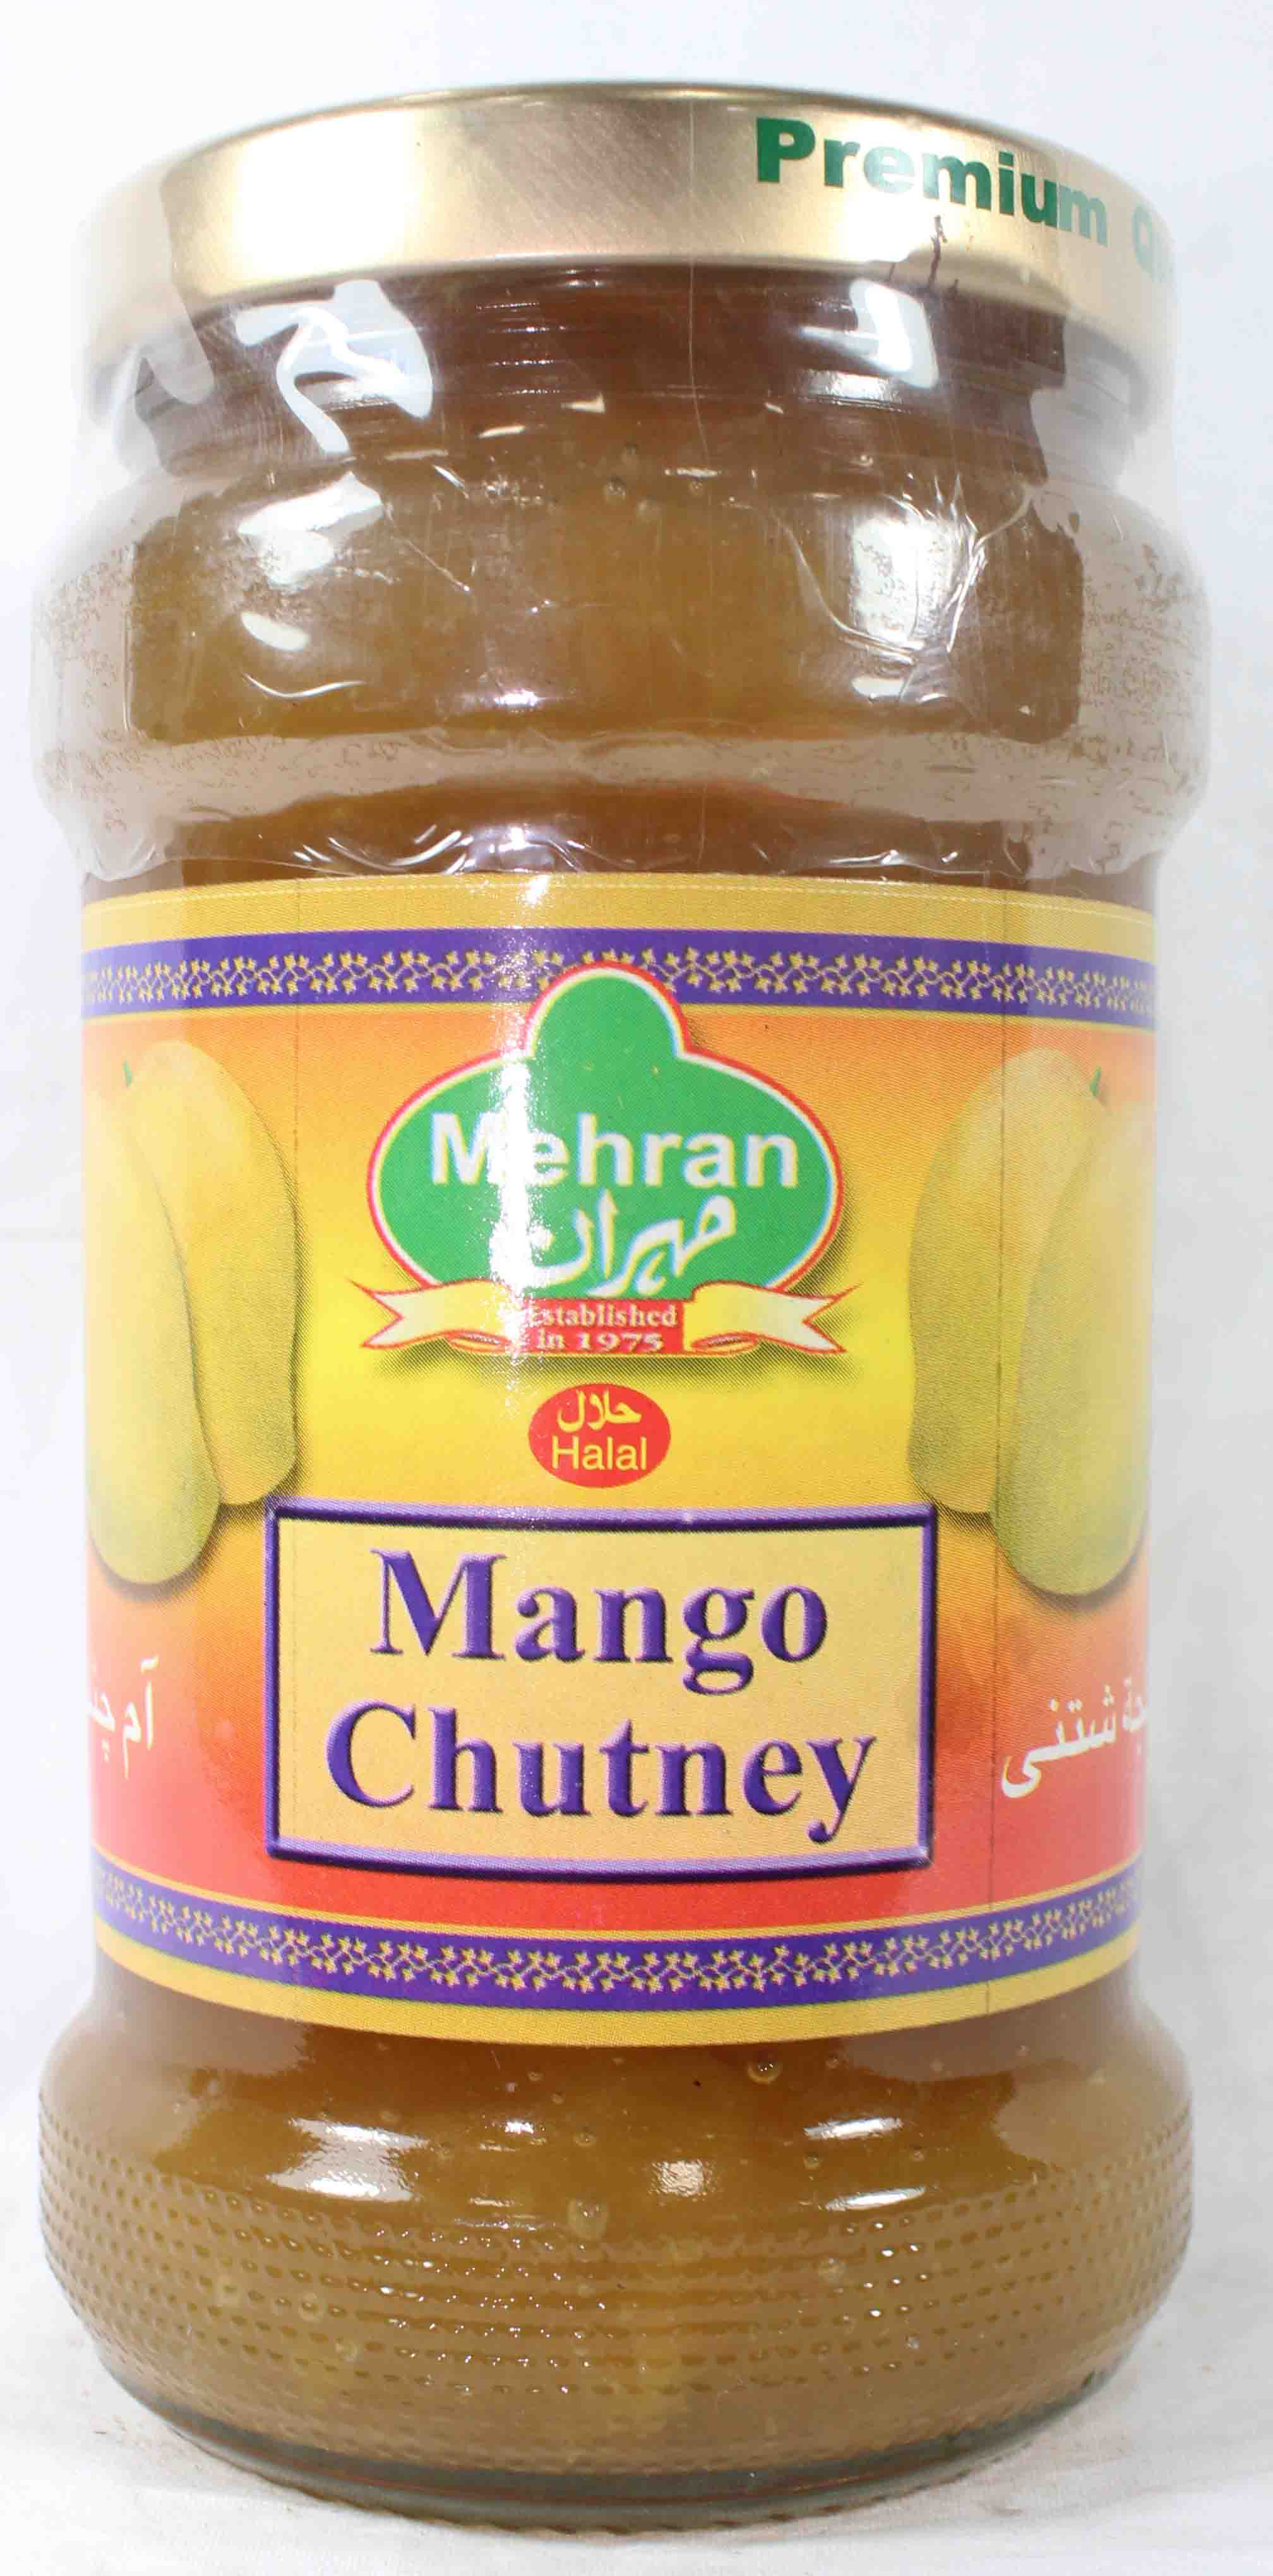 Mehran Mango Chutney Bottle 320gm